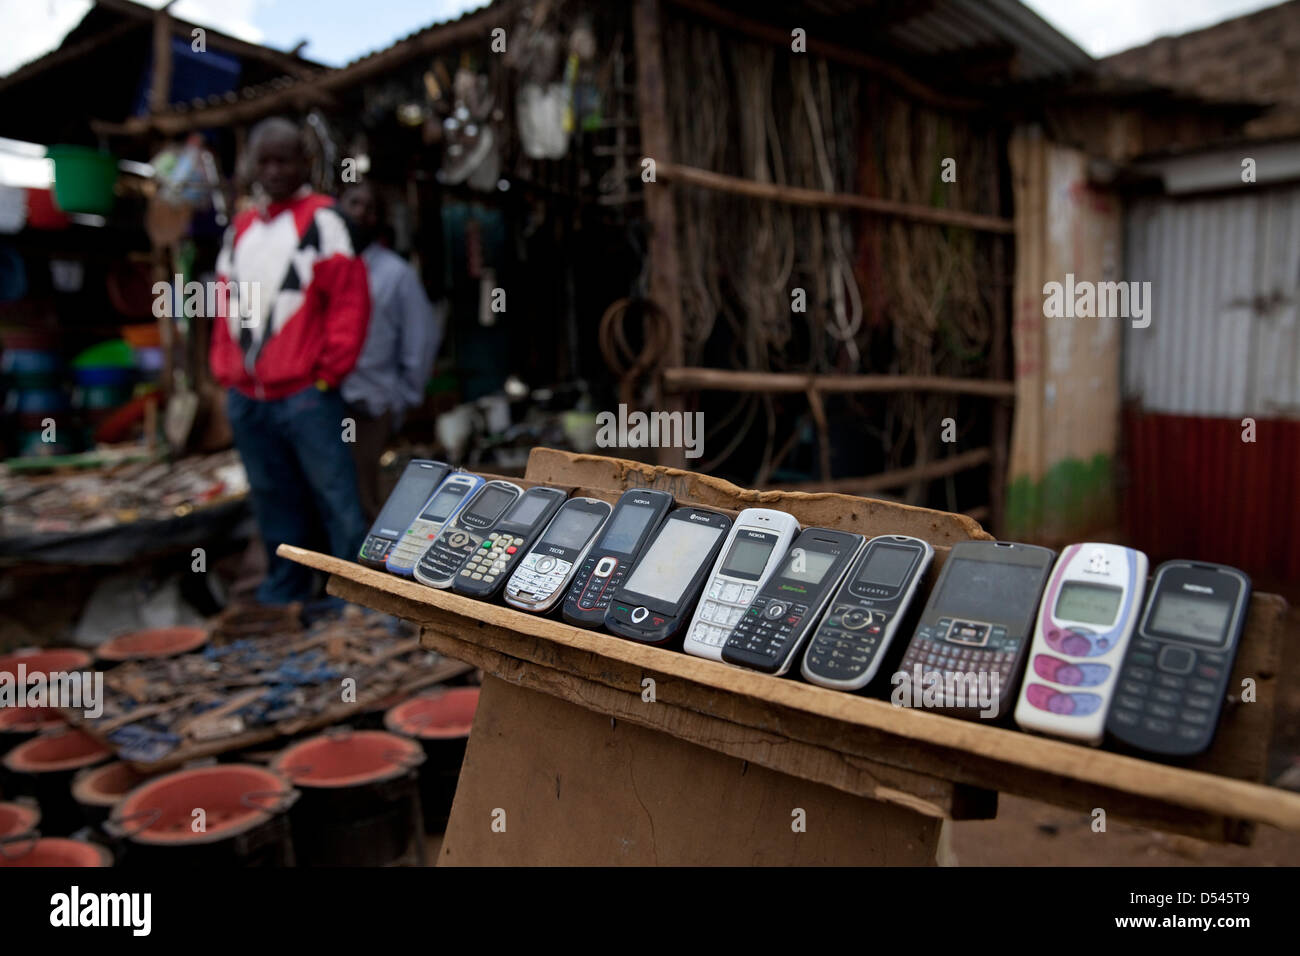 Mobile phones in Africa Stock Photo